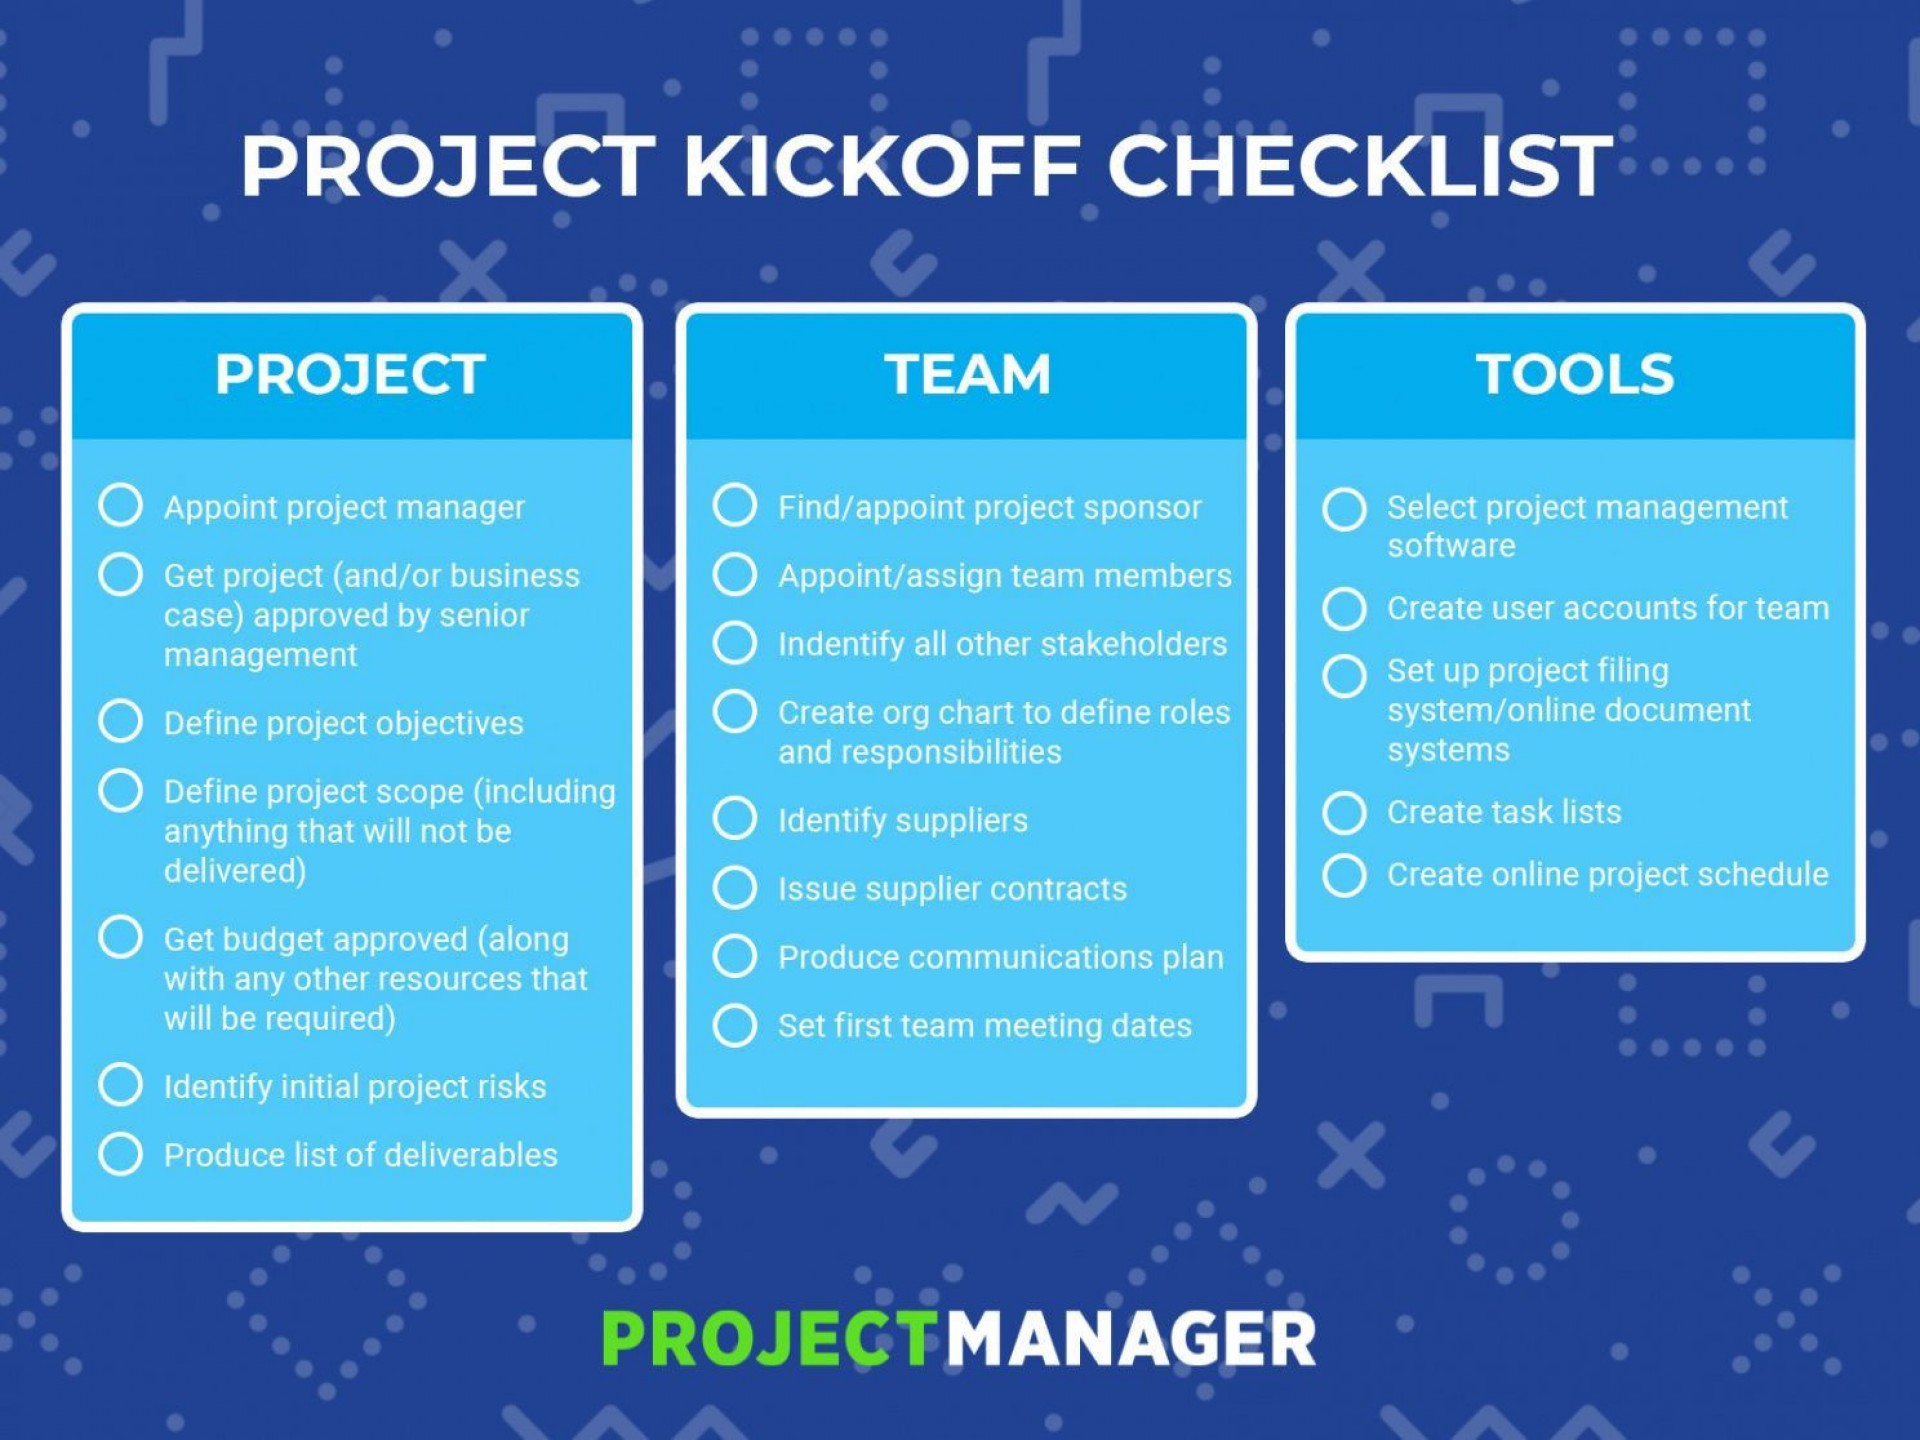 005 Staggering Project Team Kickoff Meeting Agenda Template Idea 1920